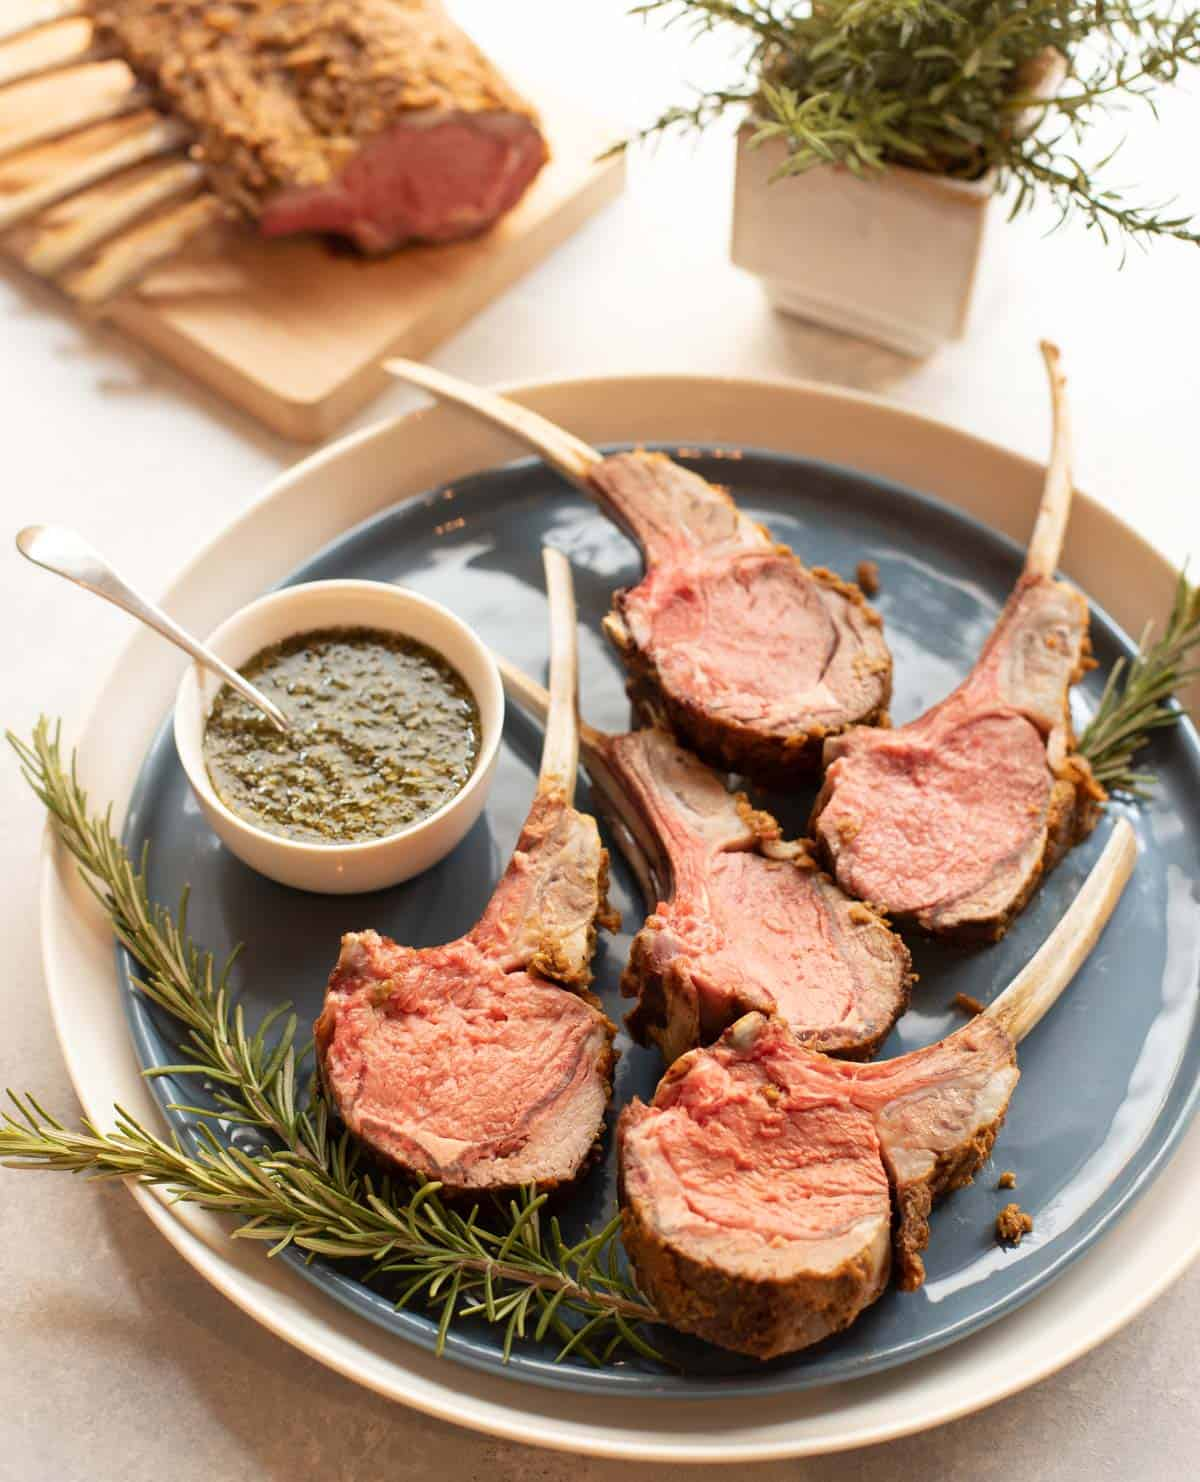 Blue plate with Mustard Crusted Rack of Lamb, sliced, with Fresh Mint Sauce on the side